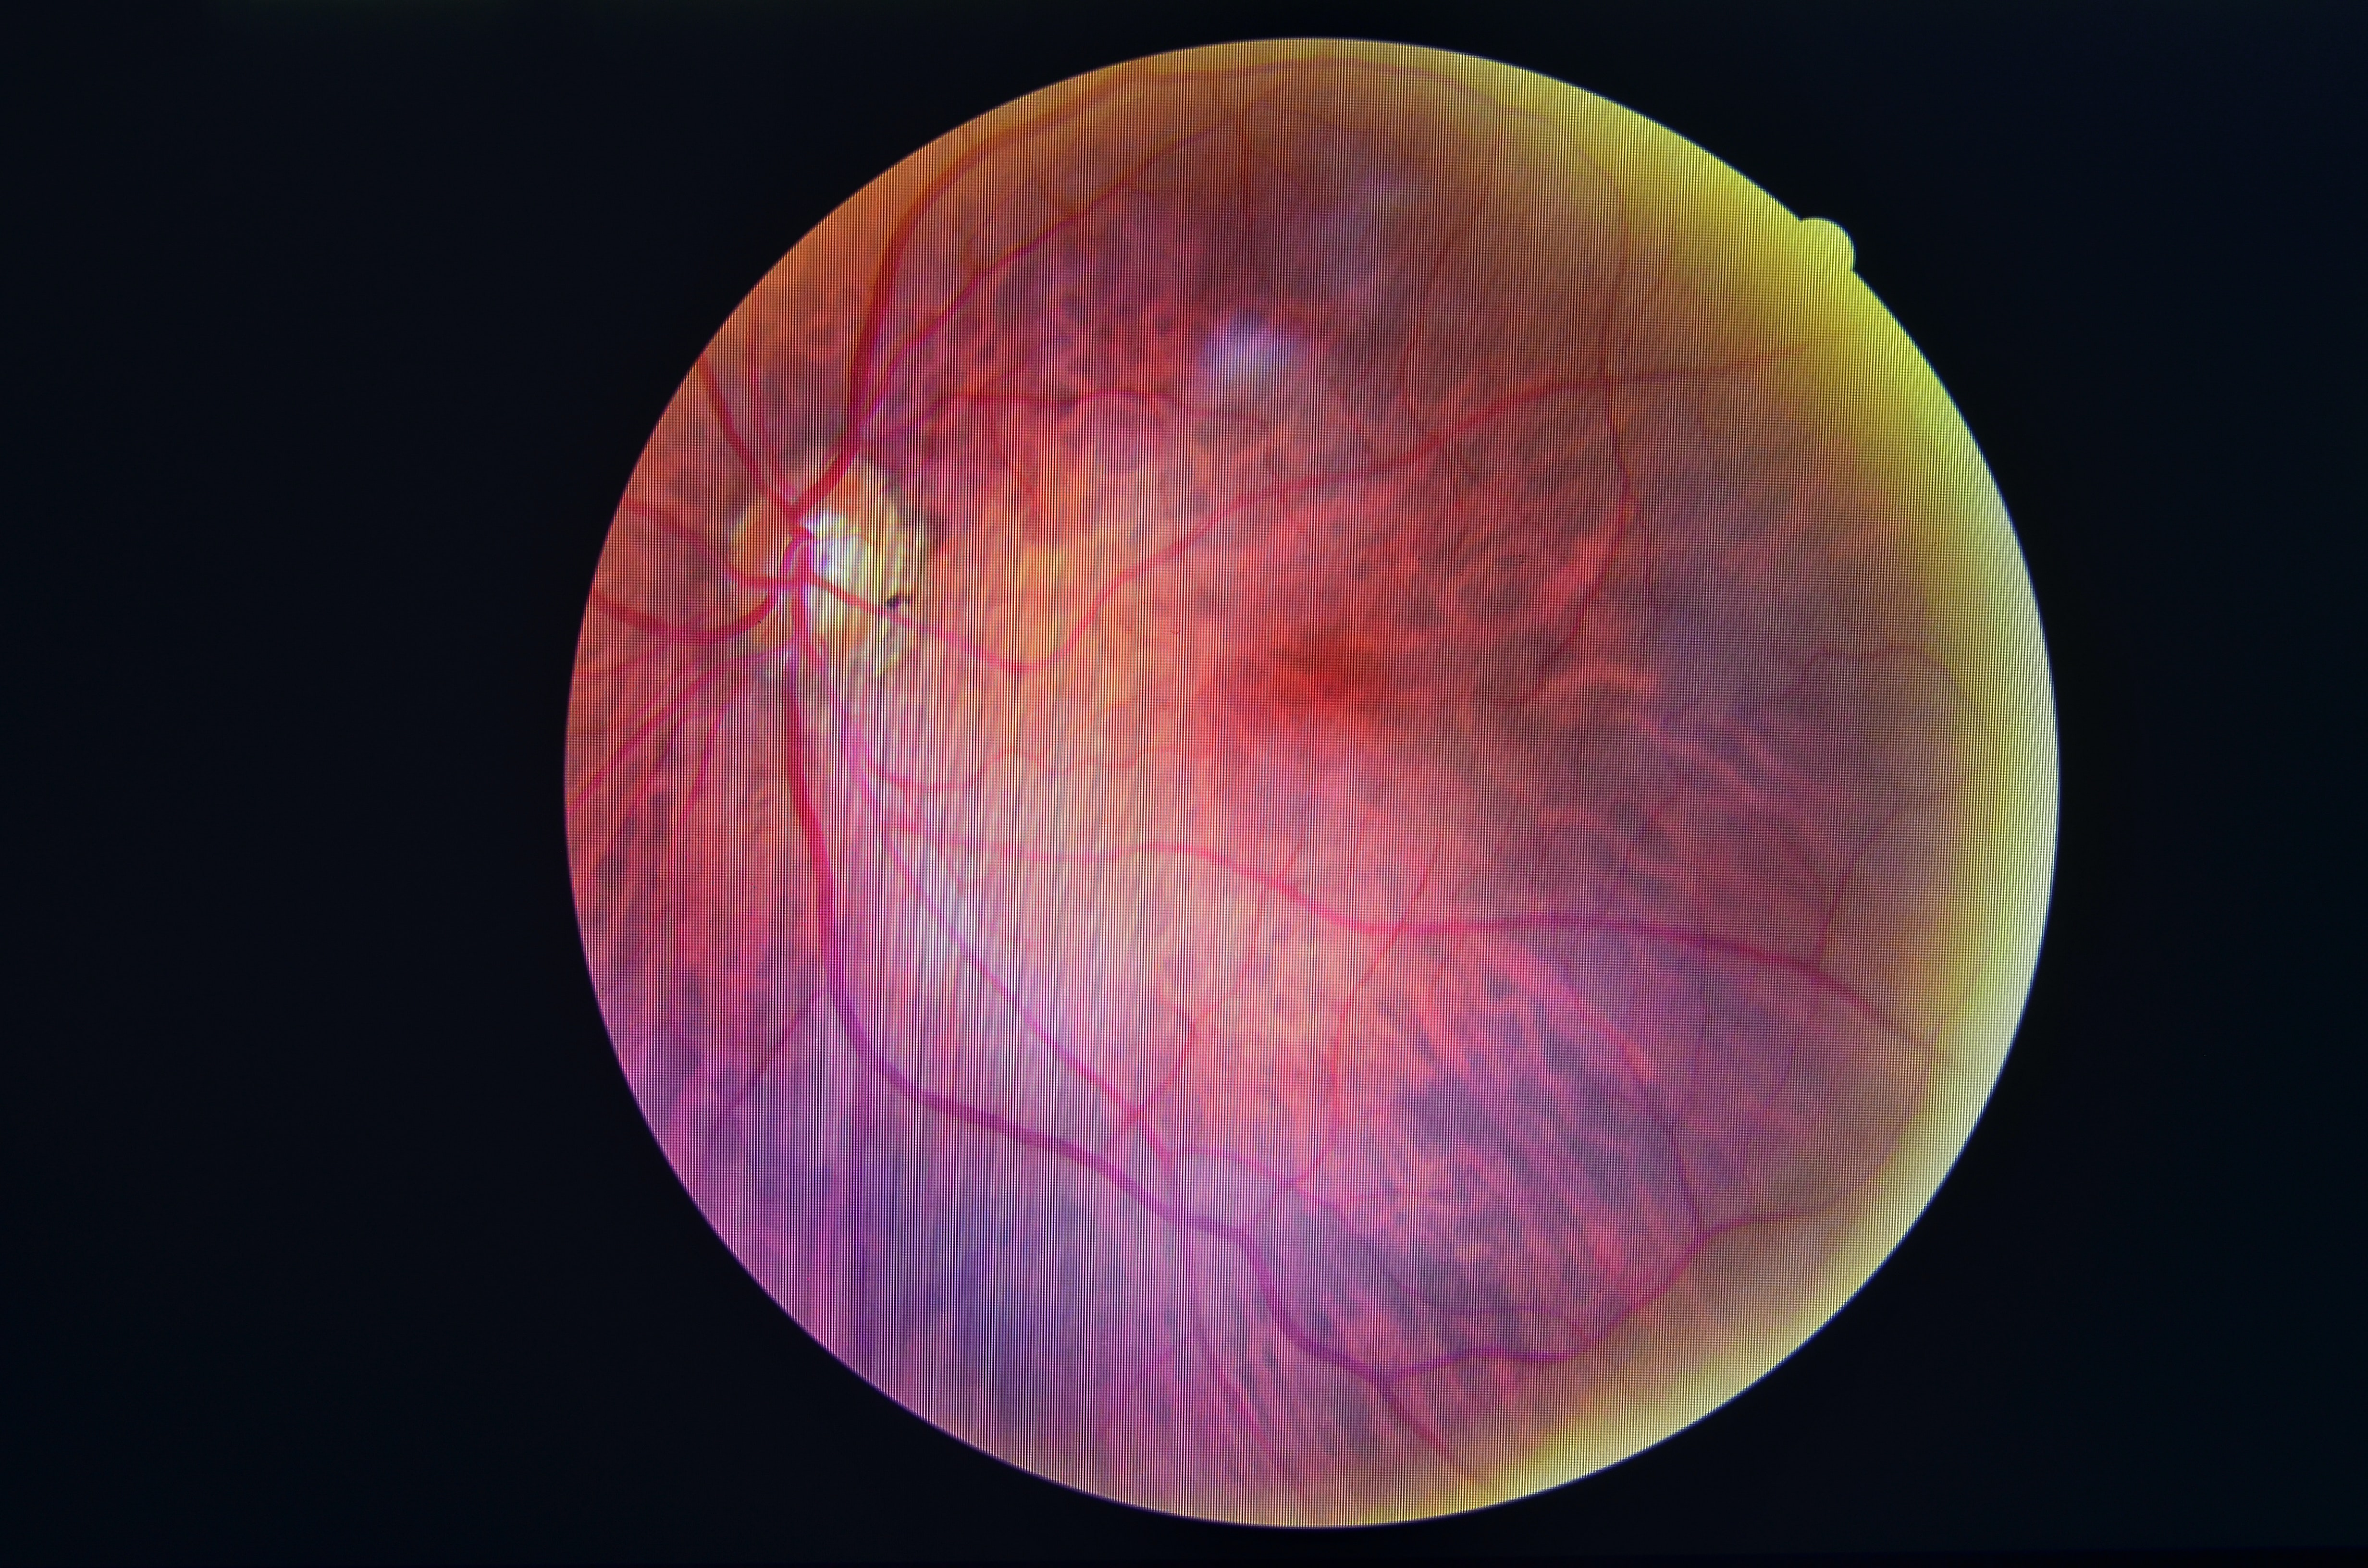 An image depicting a person suffering from Diabetic Retinopathy symptoms